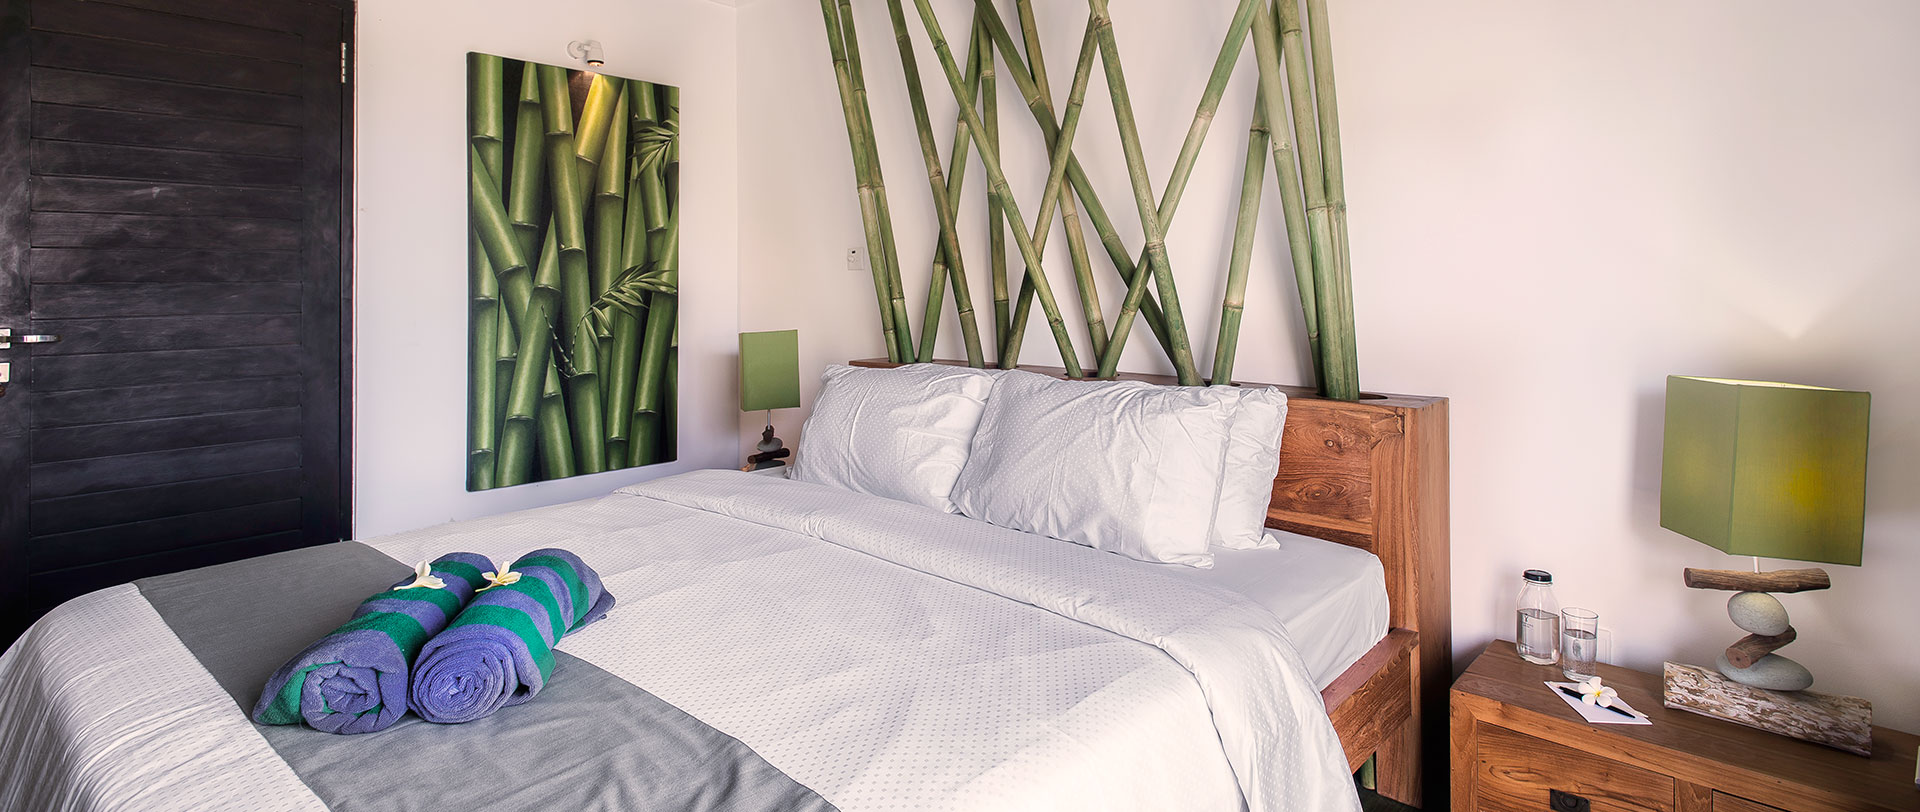 Villas in Bukit Jimbaran - Room Bamboo2_20160207043118